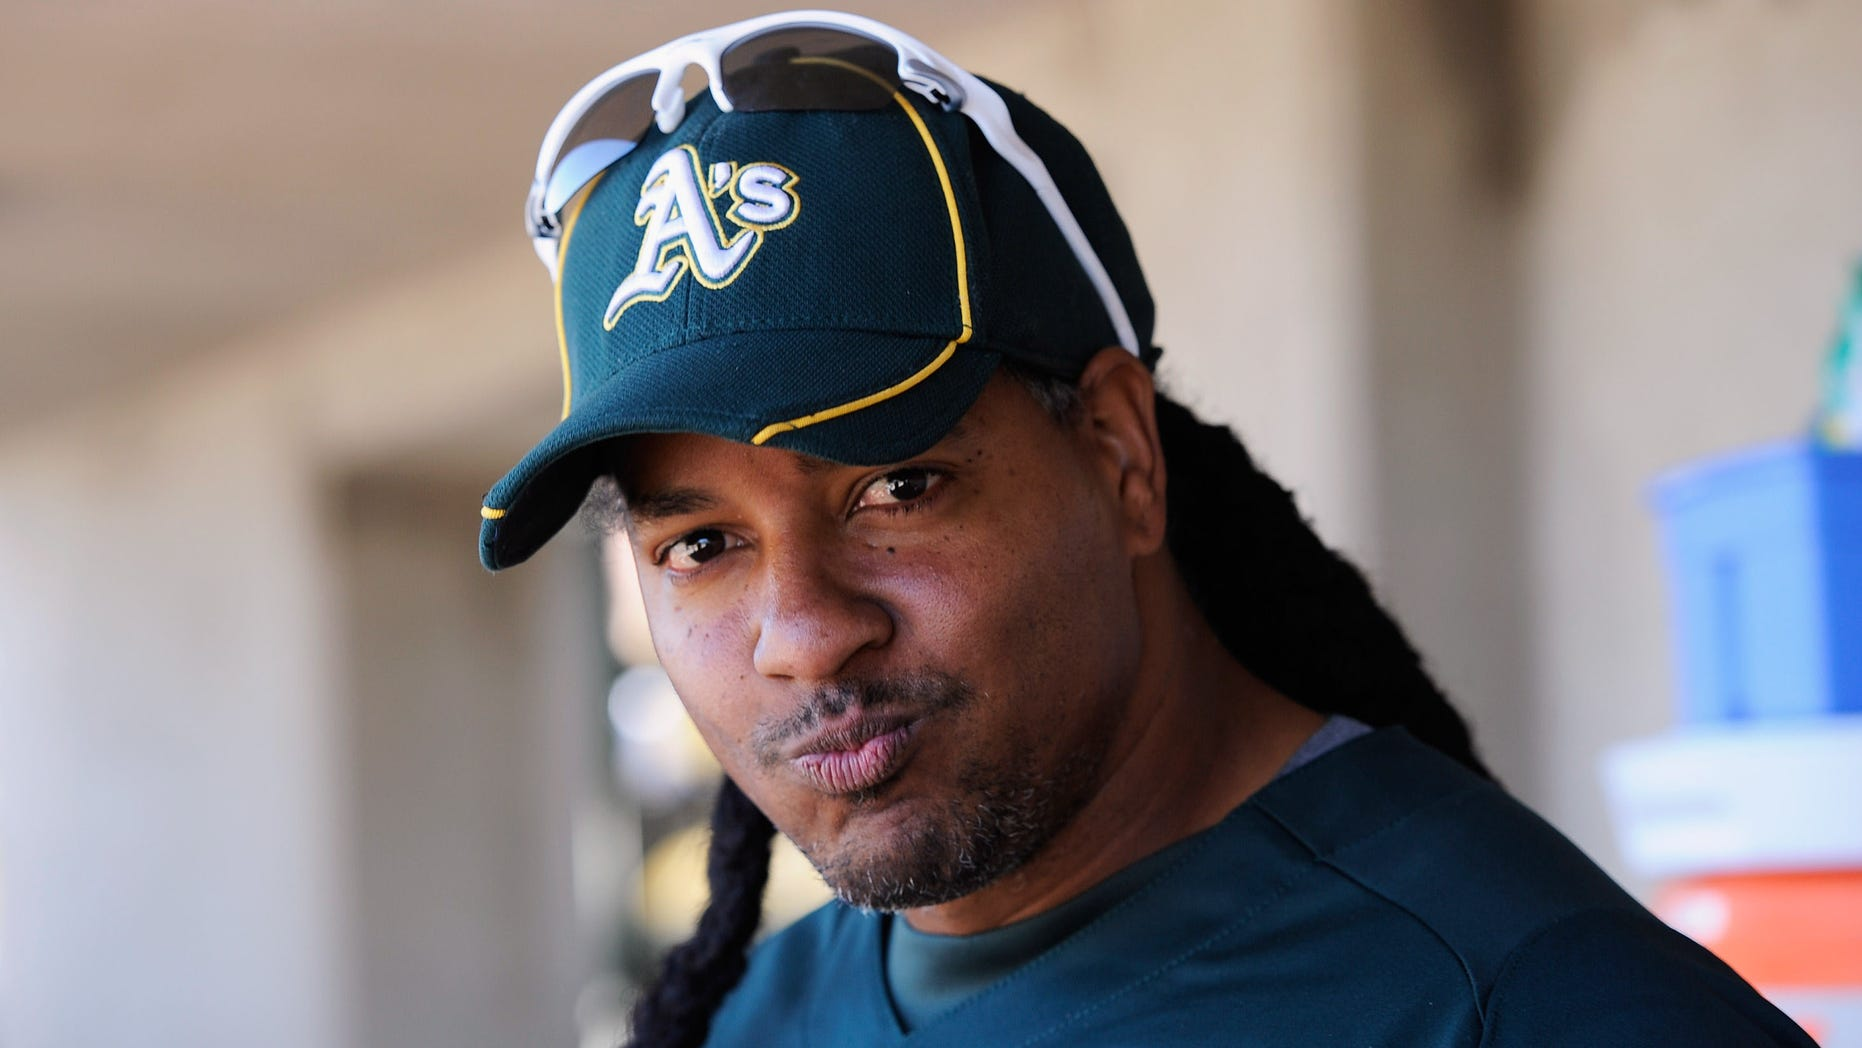 PHOENIX, AZ - MARCH 10:  Manny Ramirez #1 of the Oakland Athletics before the start of a spring training baseball game against the Cincinnati Reds at the Phoenix Municipal Stadium on March 10, 2012 in Phoenix, Arizona.  (Photo by Kevork Djansezian/Getty Images)